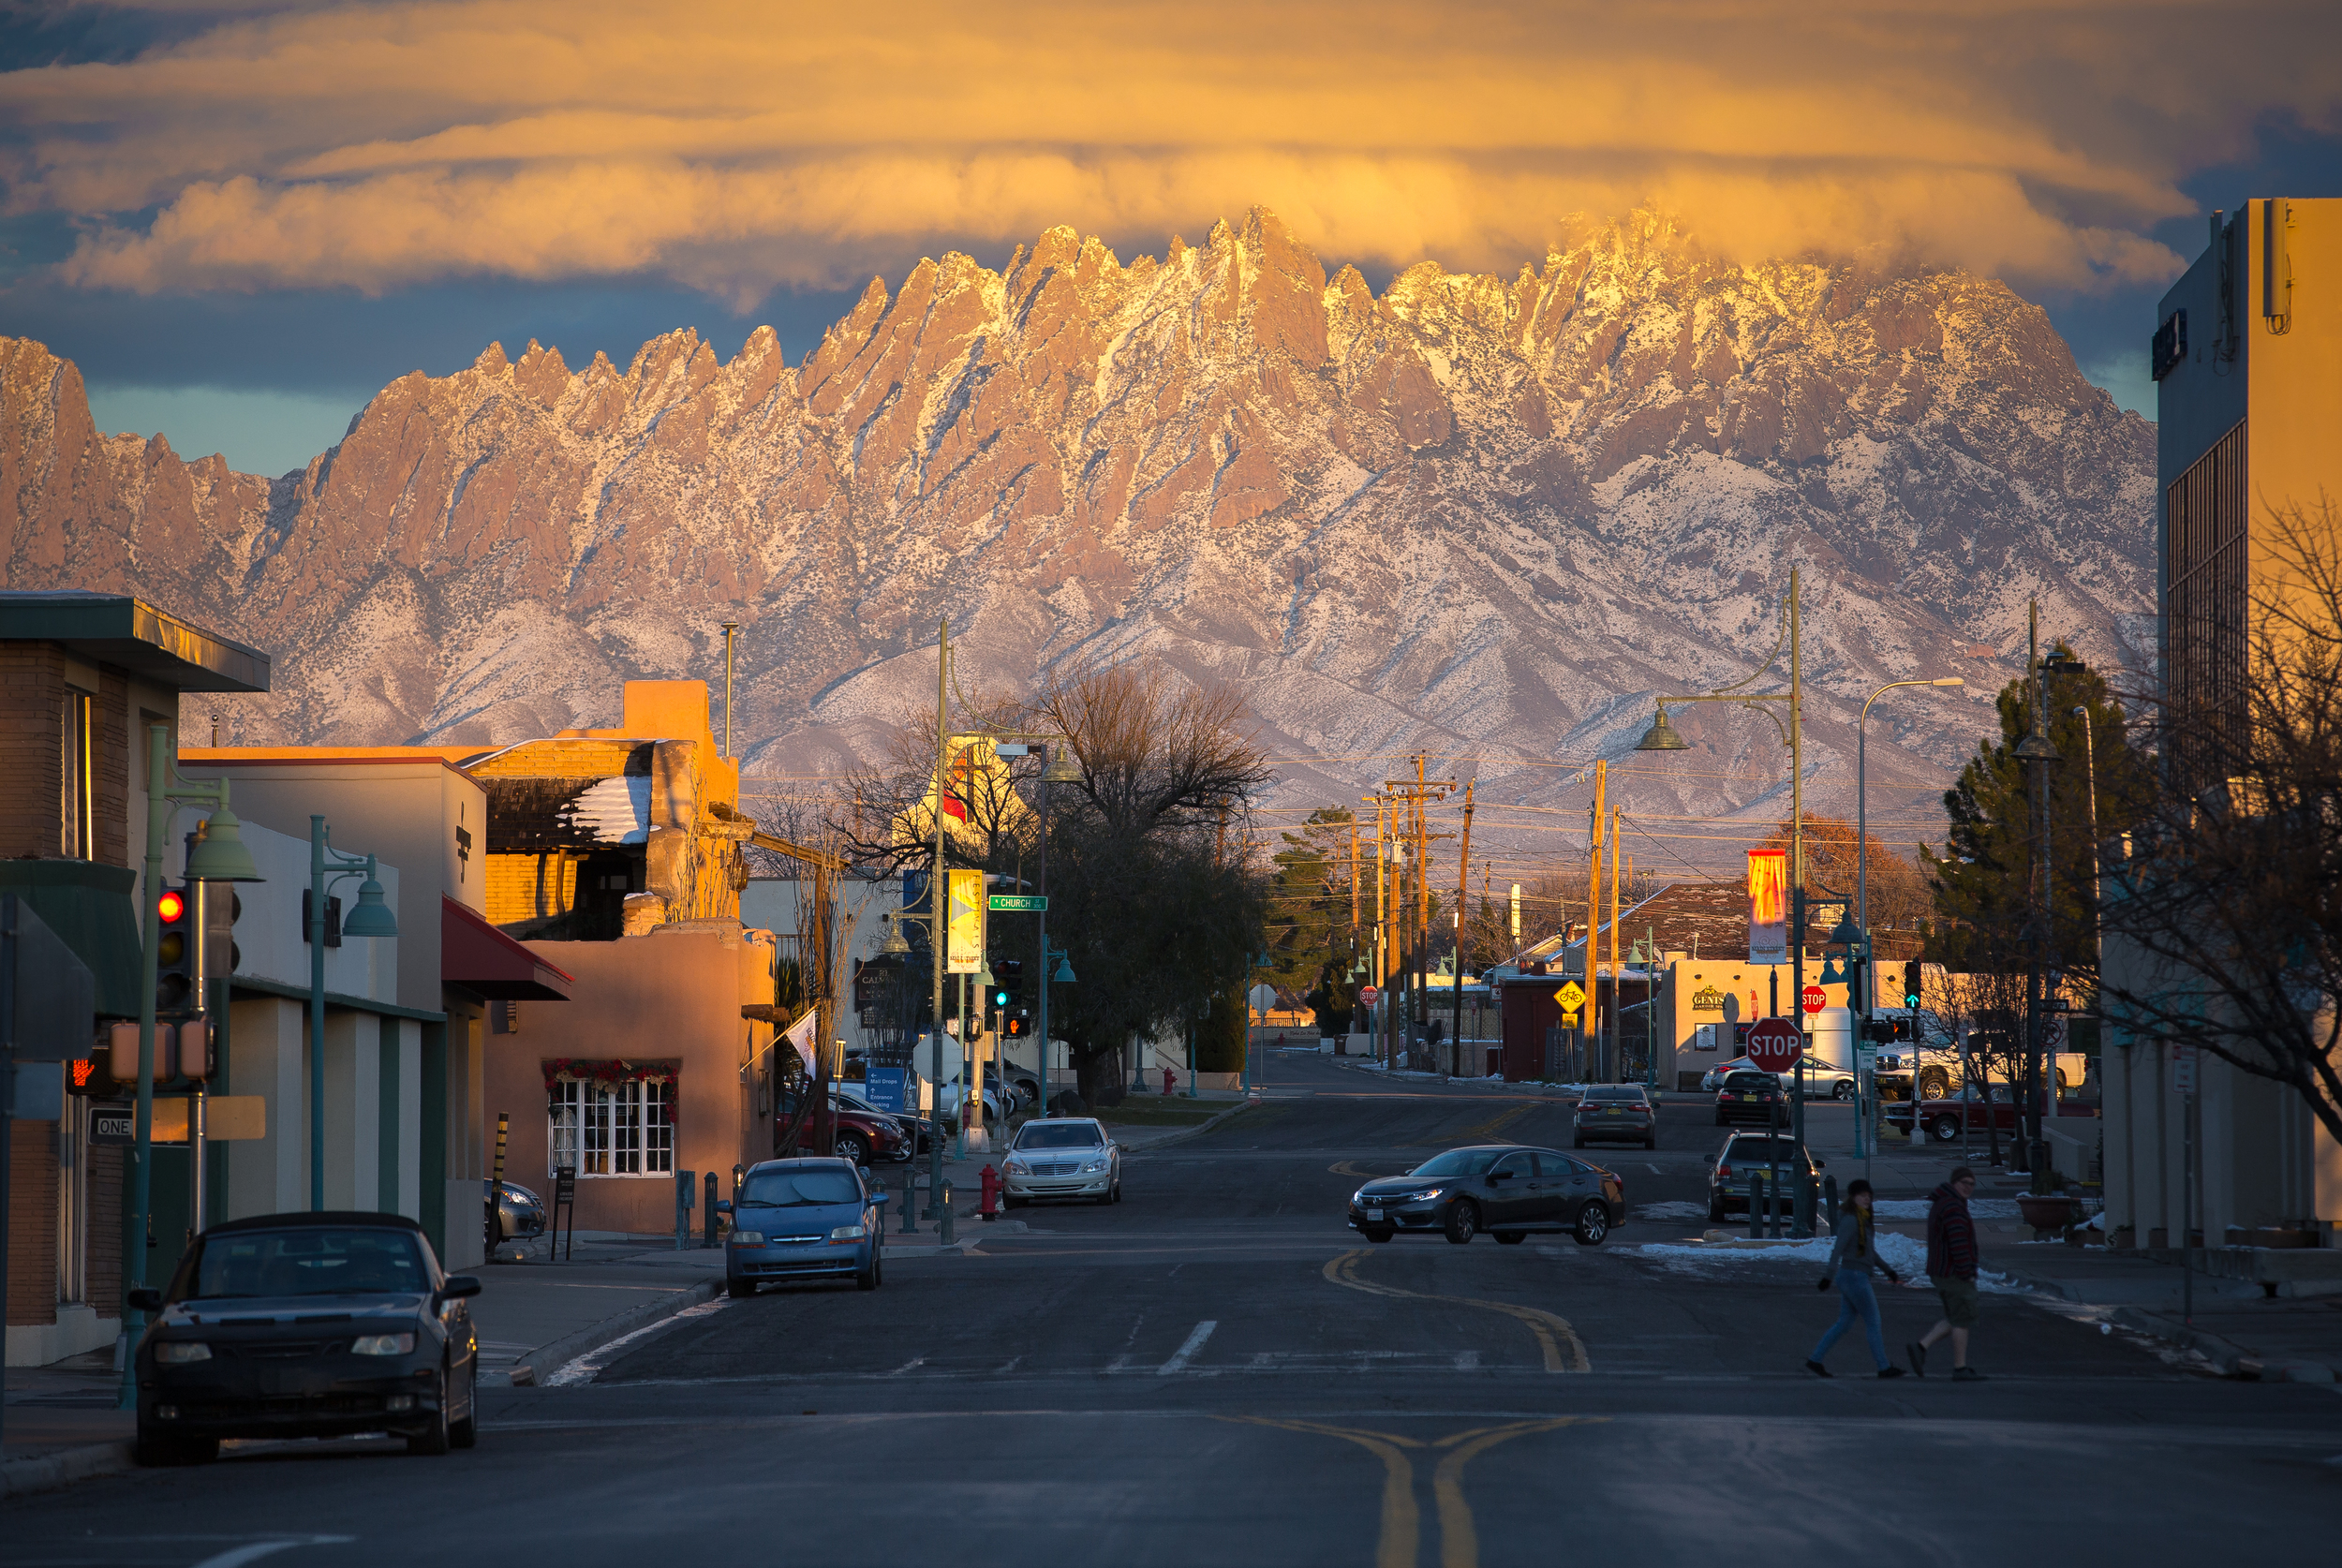 Evening light illuminates the Organ Mountains in Las Cruces, New Mexico.